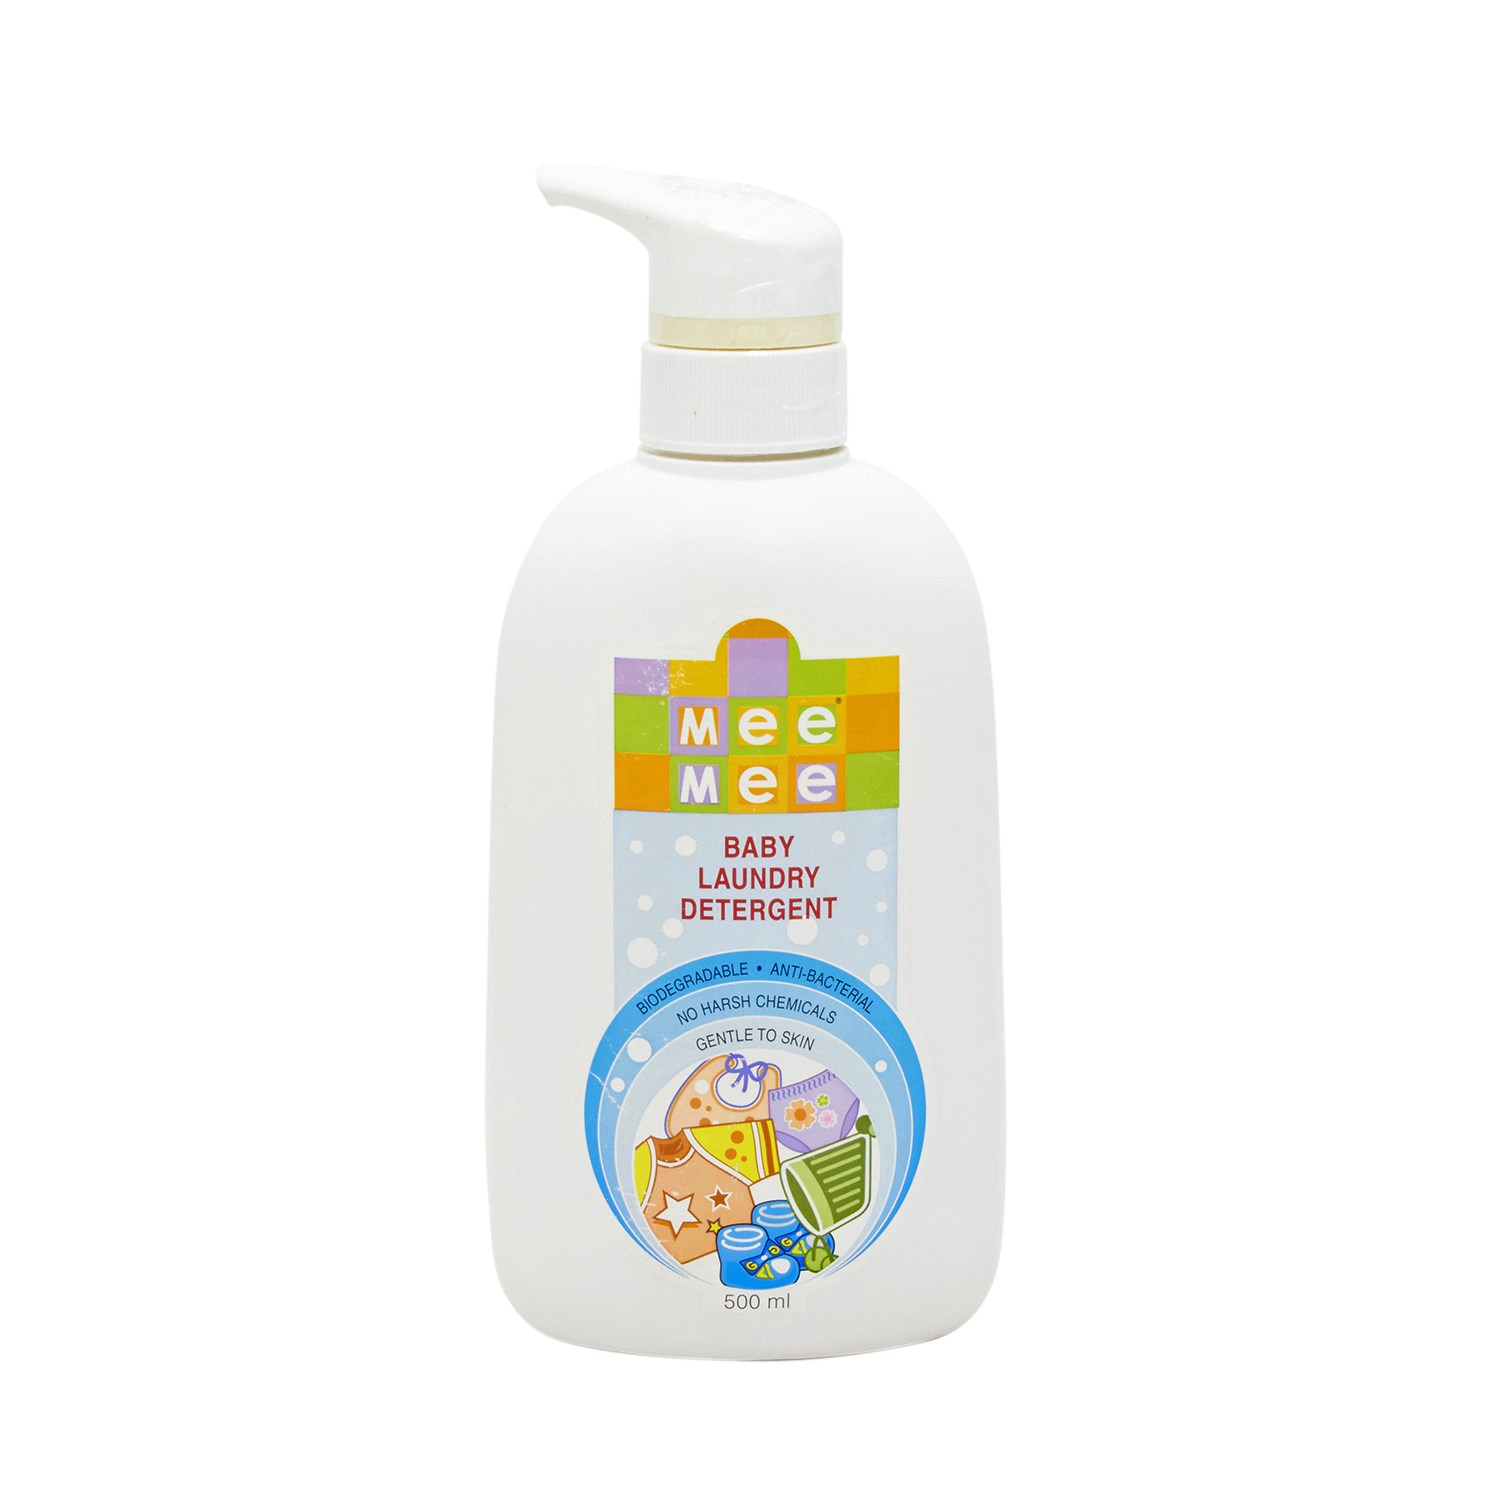 Mee Mee MM 3784 Baby Laundry Detergent - 500 ml